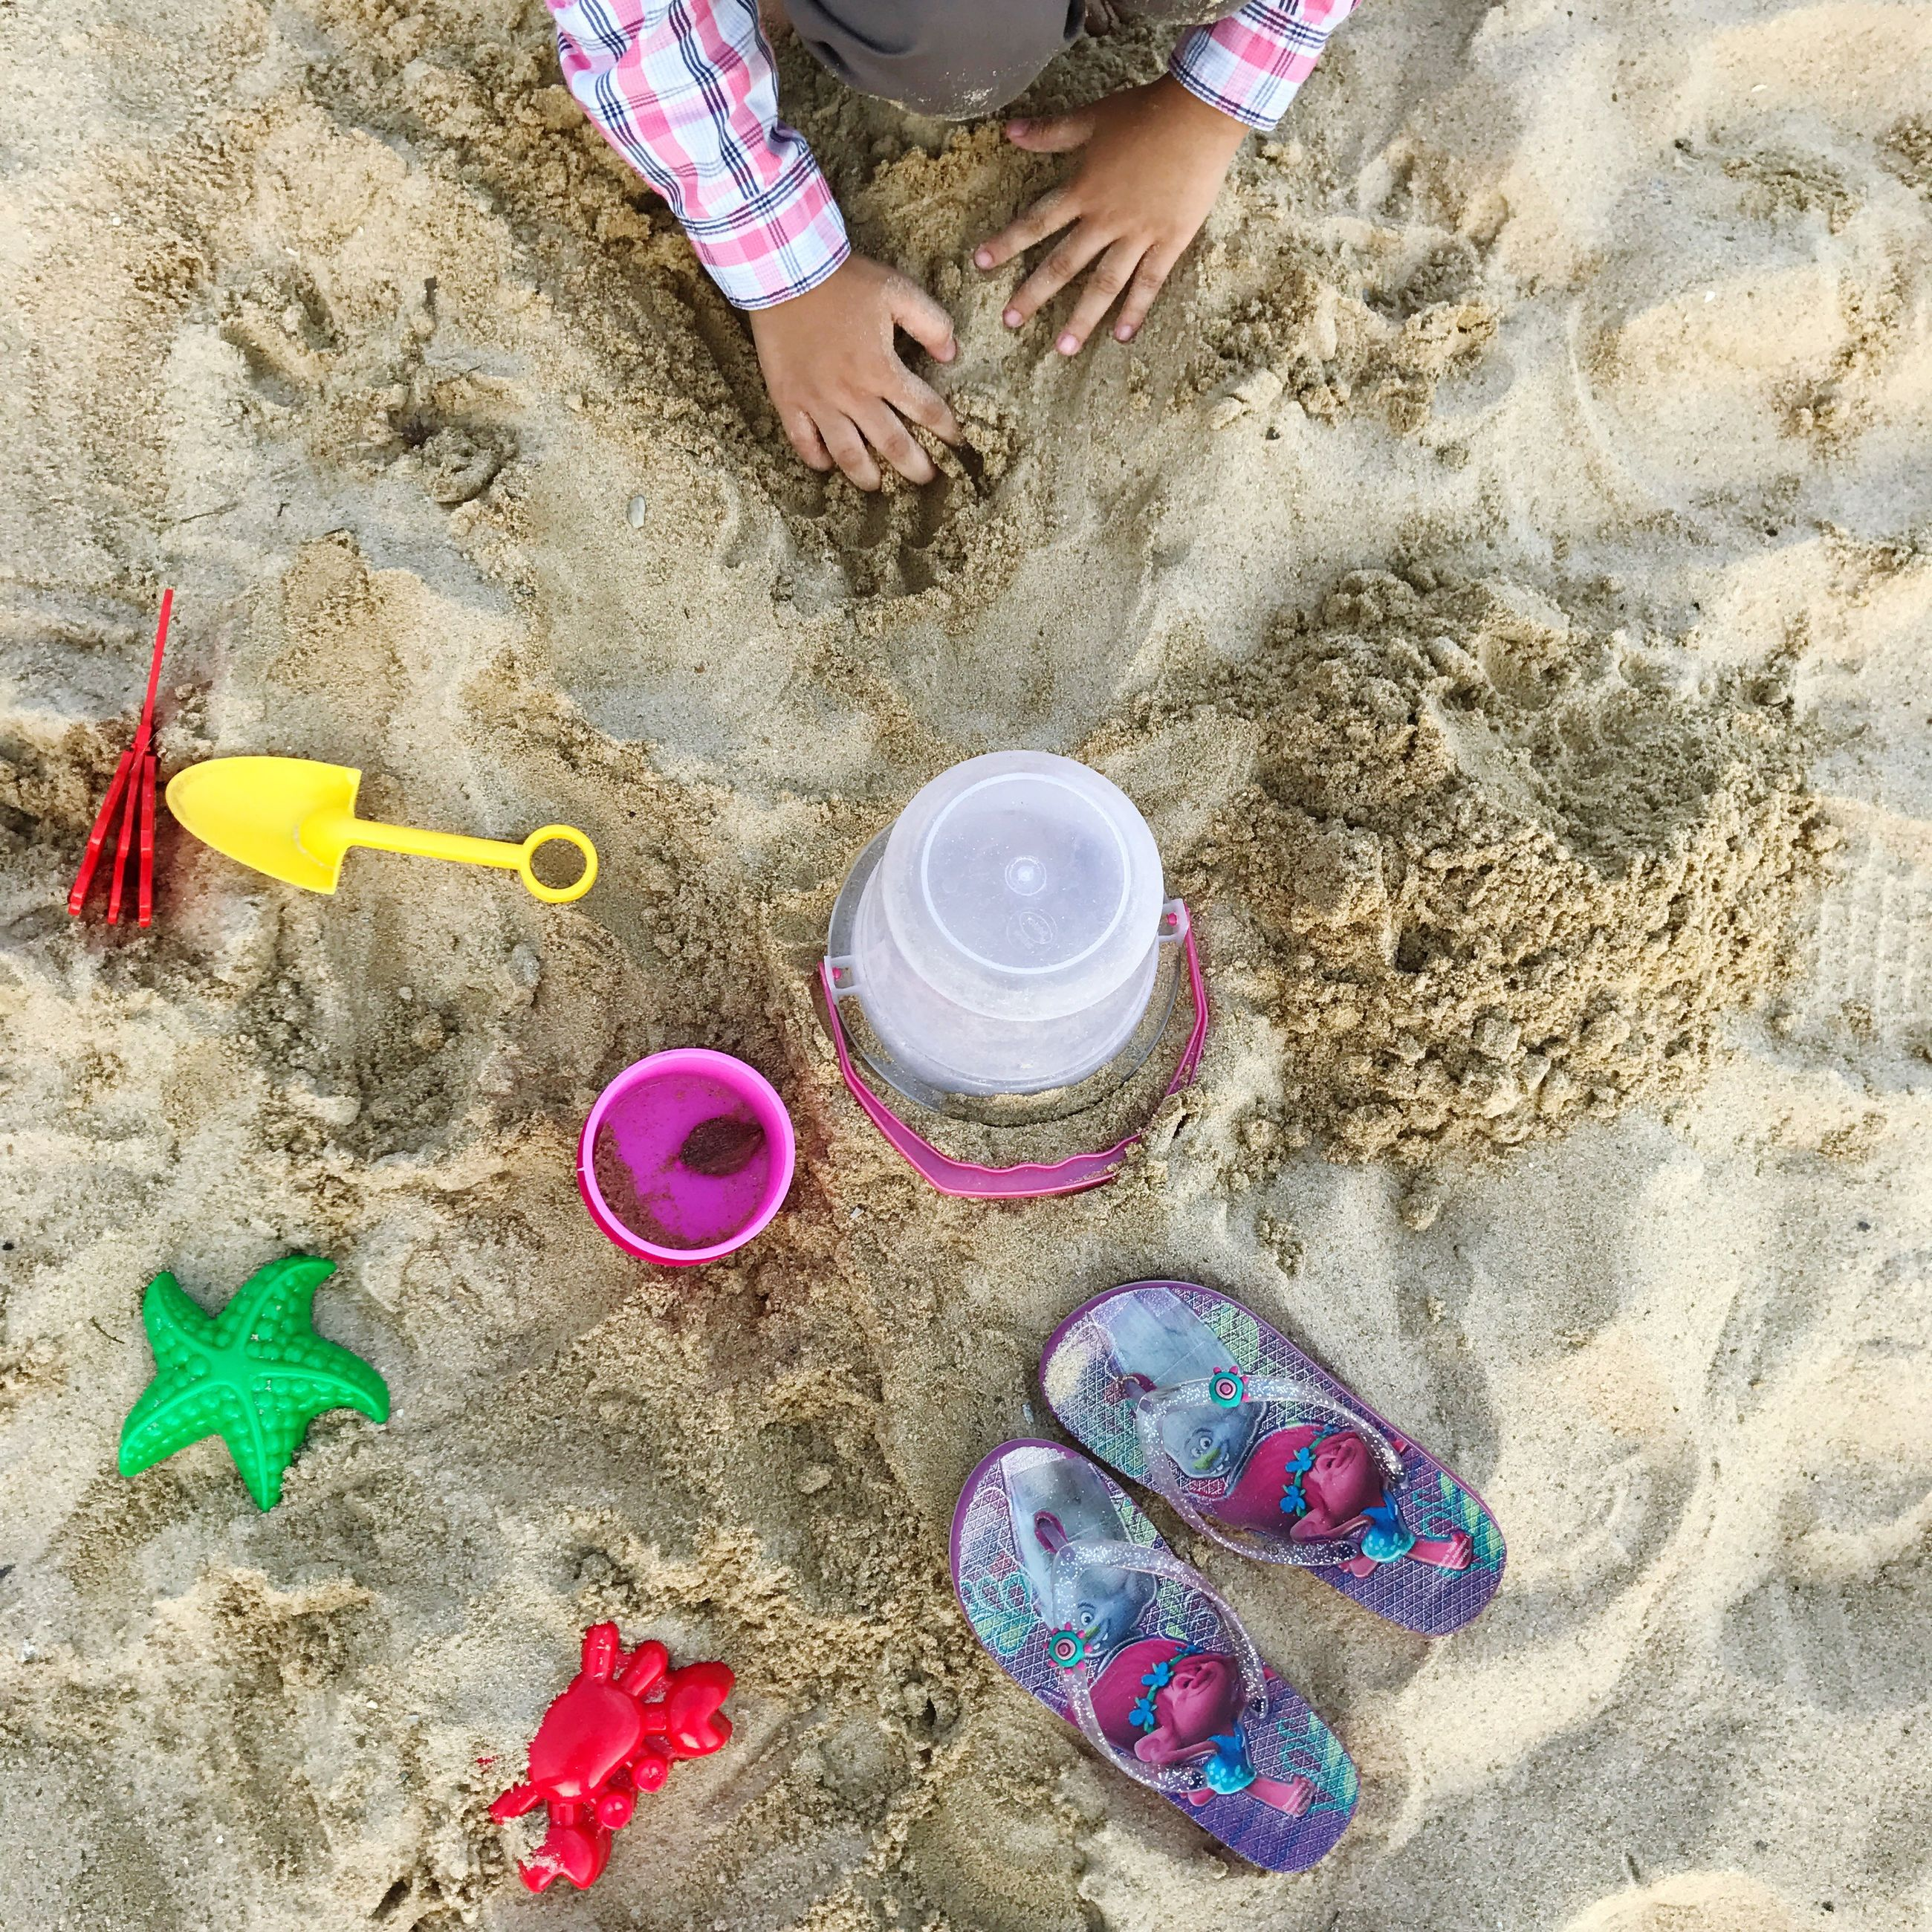 child, high angle view, sand, low section, girls, outdoors, leisure activity, human leg, childhood, human body part, close-up, beach, people, vacations, day, one person, adult